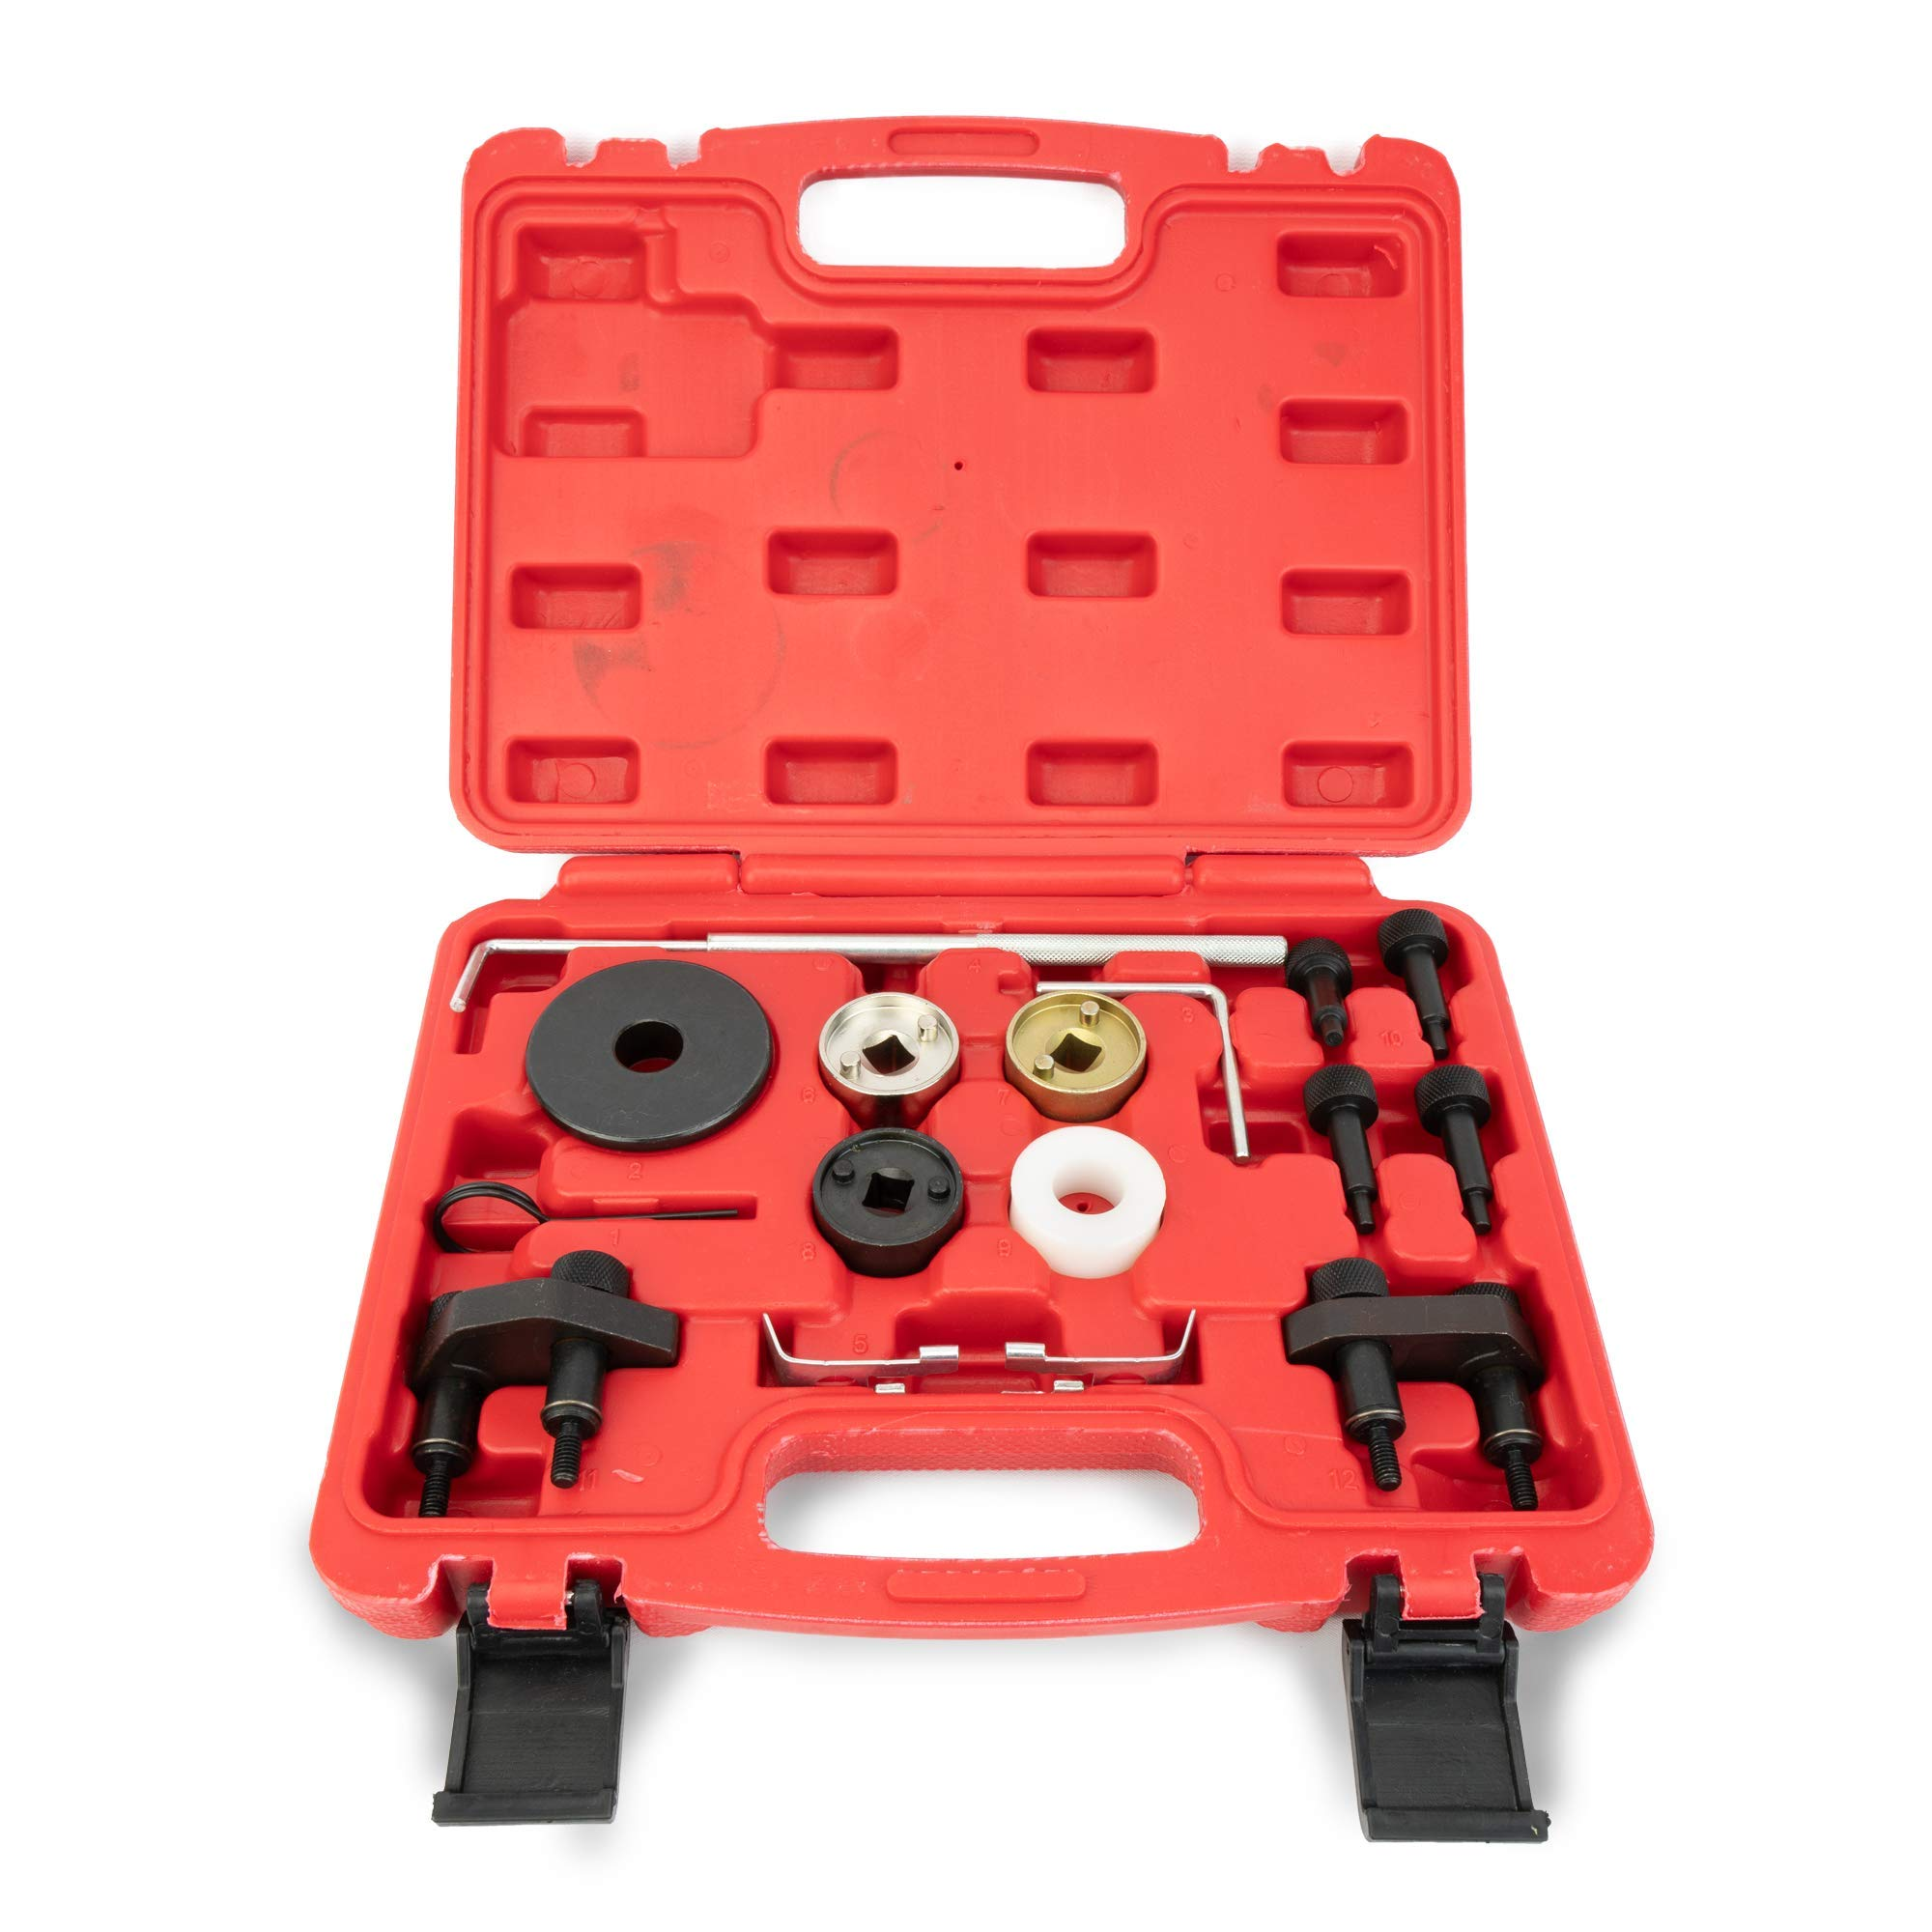 Replacement VAG Volkswagen Audi Timing Tool Kit - 1.8L, 2.0L R4 16V Turbo TSI, TSFI EA888 Engine - Replaces# T10352, T10368, T40098, T40011 & More - Audi Camshaft & Crankshaft Timing Position by Delray Auto Parts (Image #3)